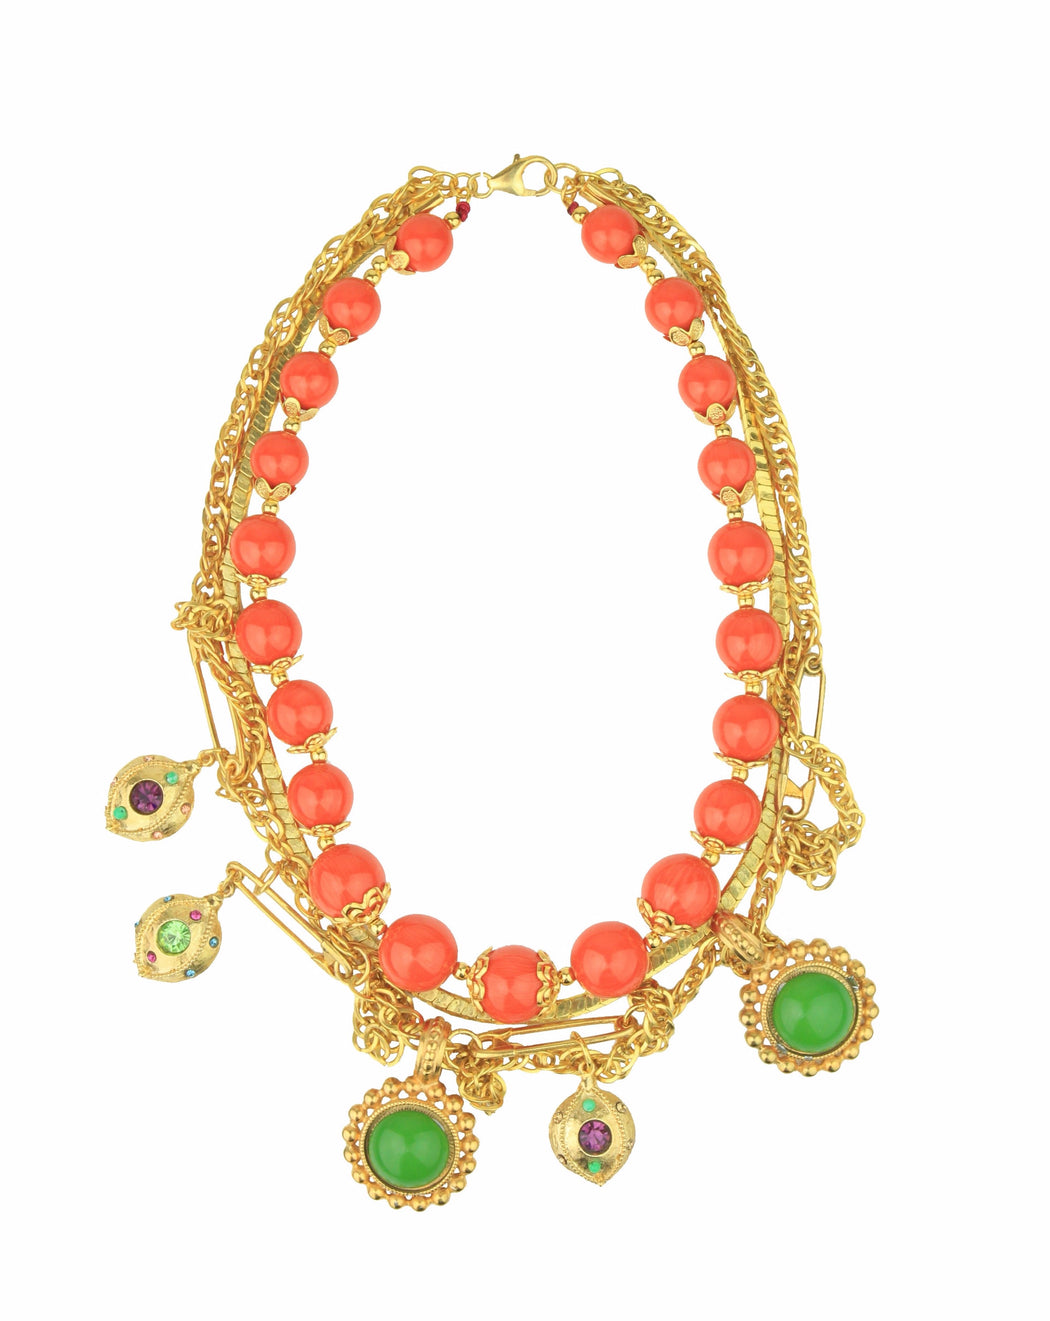 CANDY VINTAGE CHAIN GOLD ORANGE CHARMS NECKLACE - just-brazil